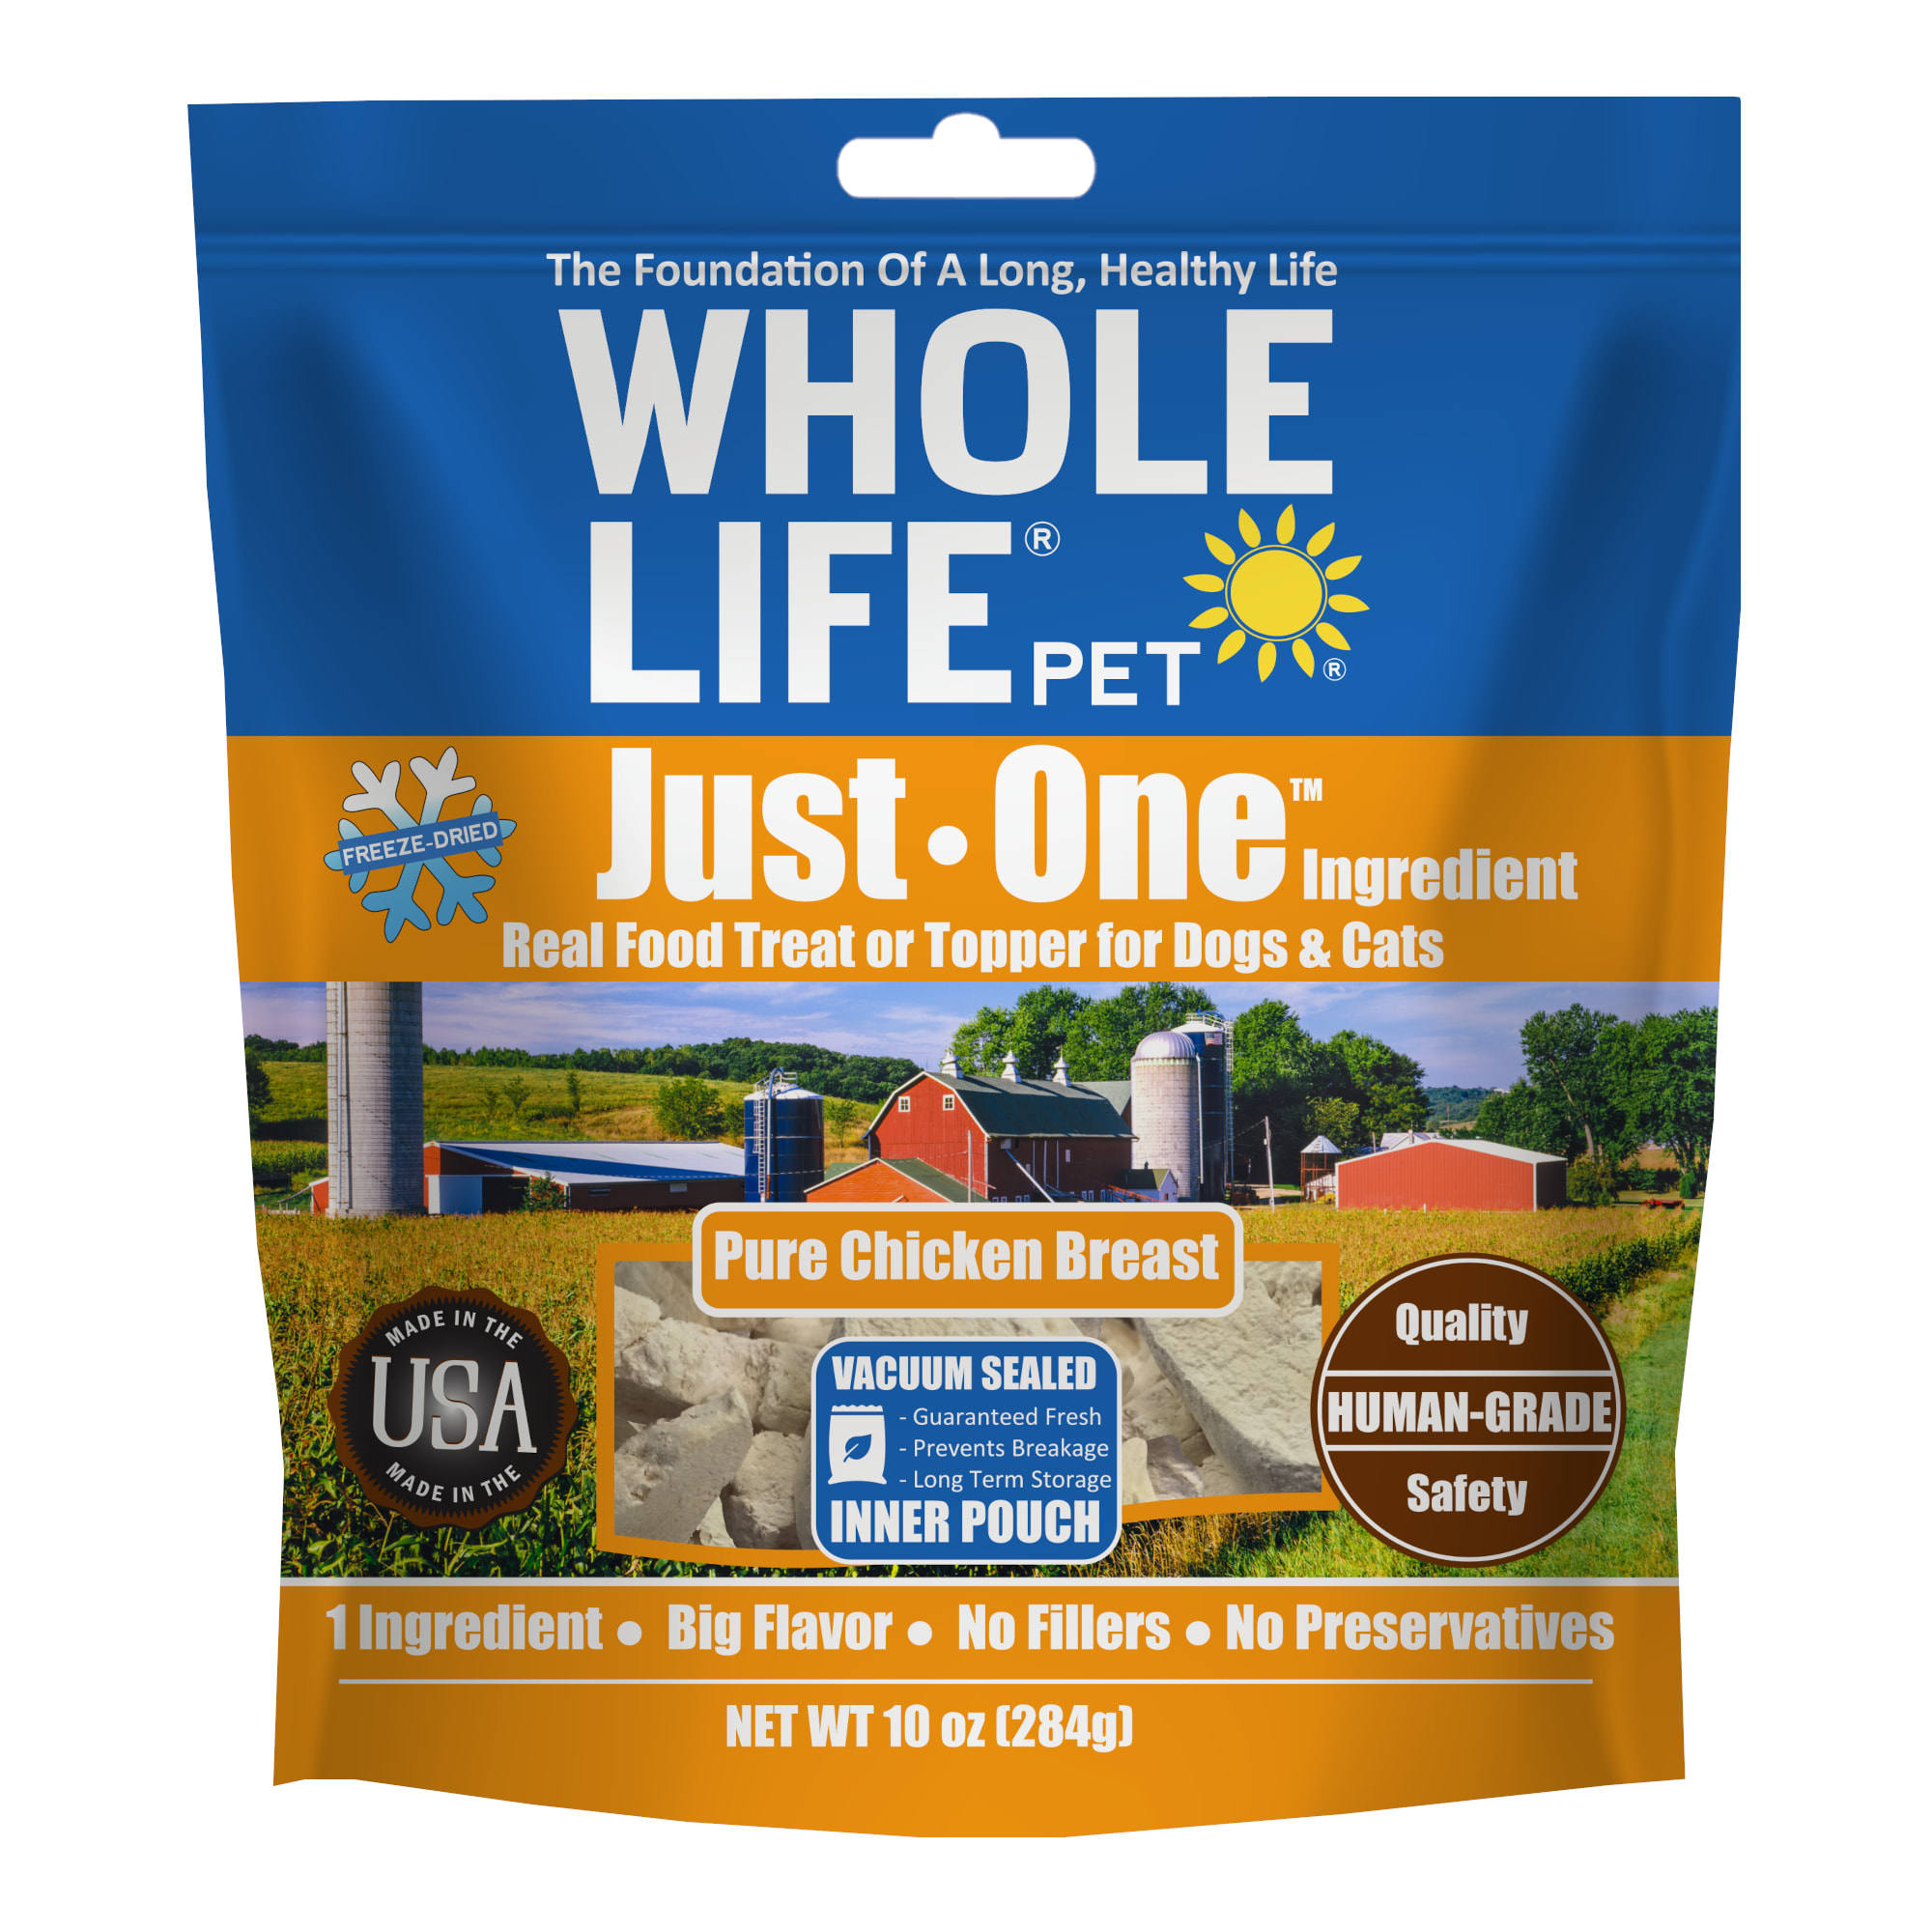 Whole Life Freeze Dried Pure Chicken Breast Whole Food Dog & Cat Treats